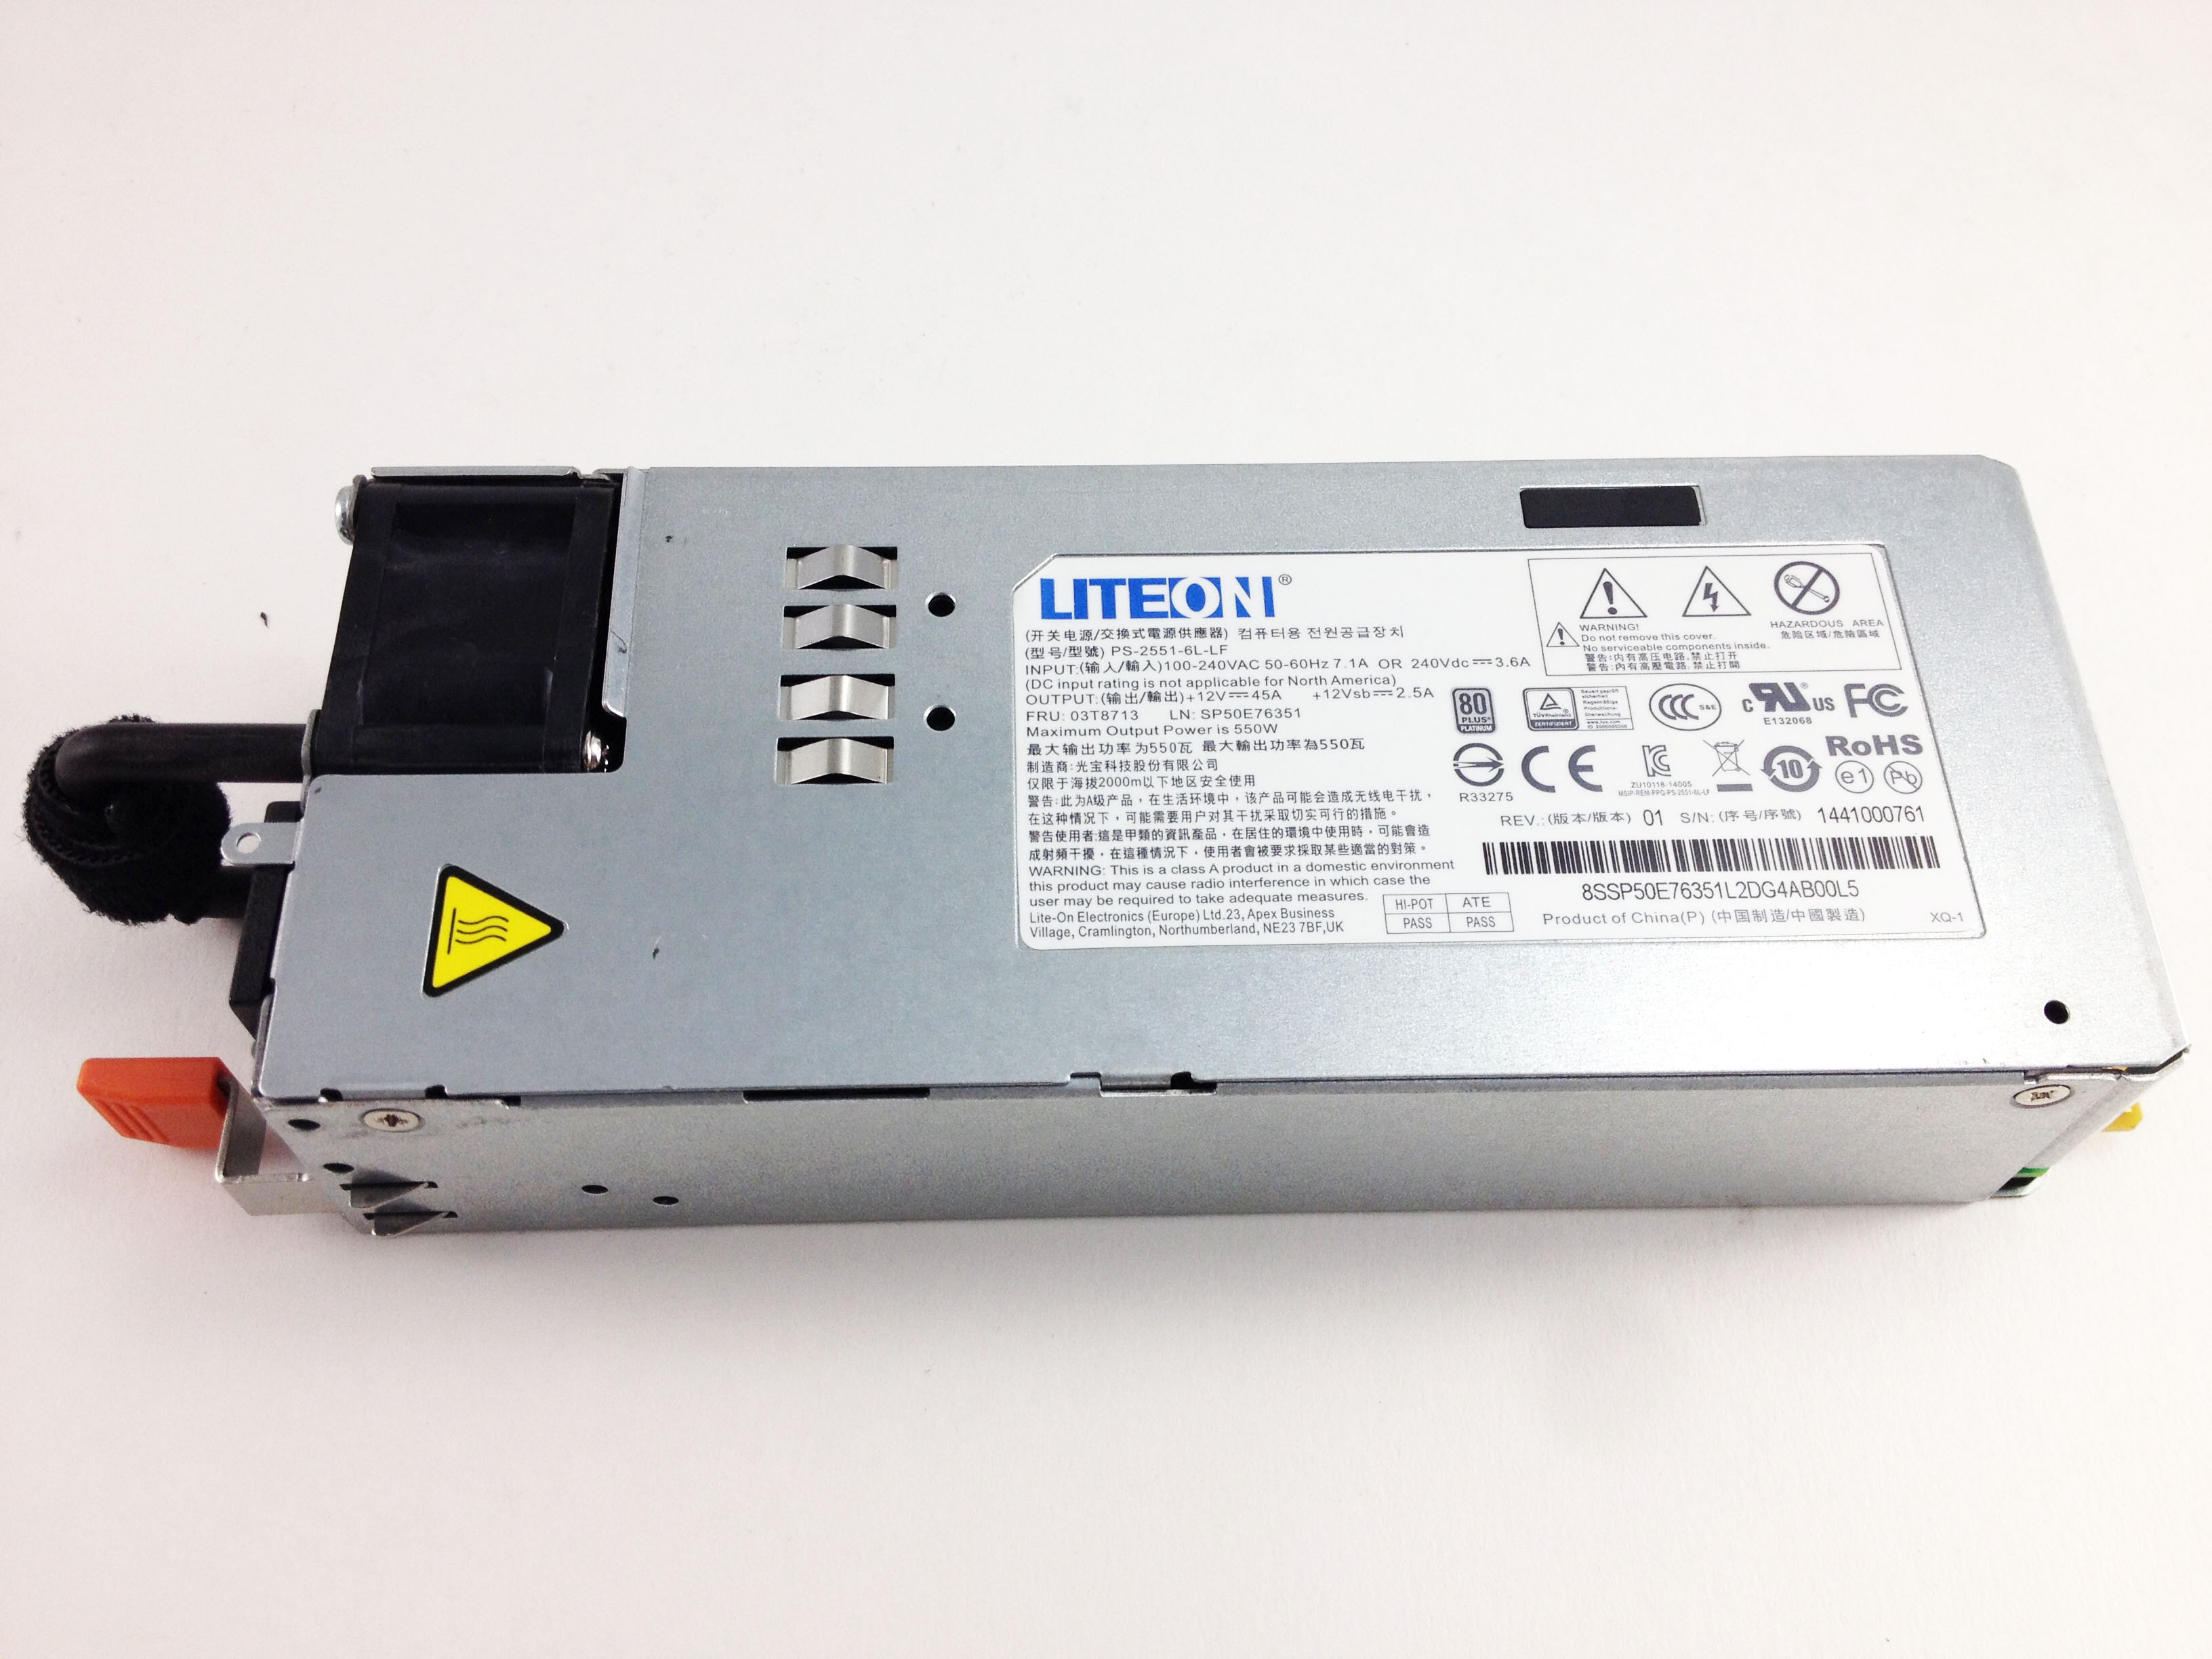 Liteon 550W Power Supply For Lenovo ThinkServer Rd450 RD650 (03T8713)